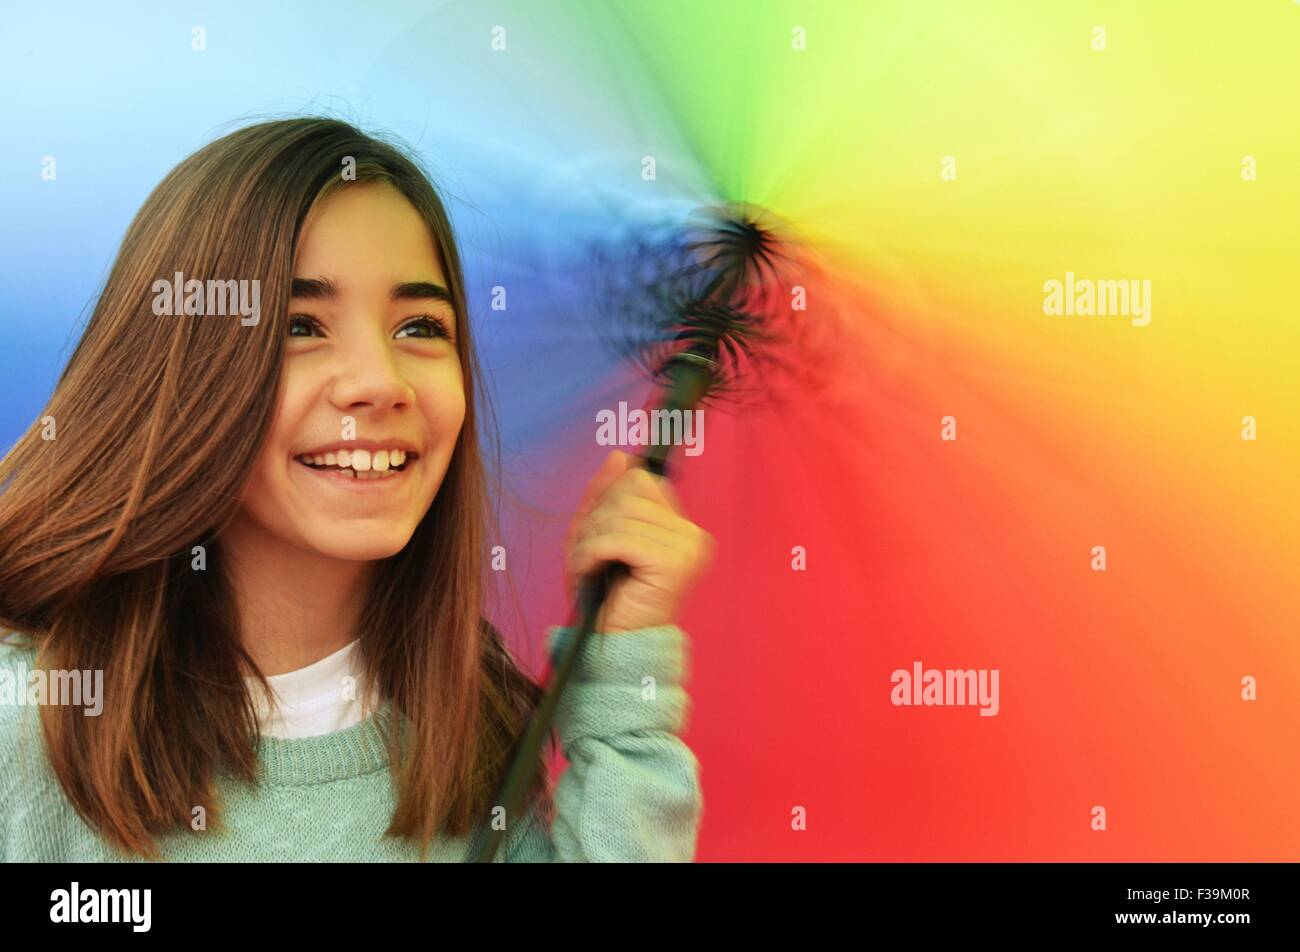 Portrait of a smiling girl twirling a multi-colored umbrella - Stock Image